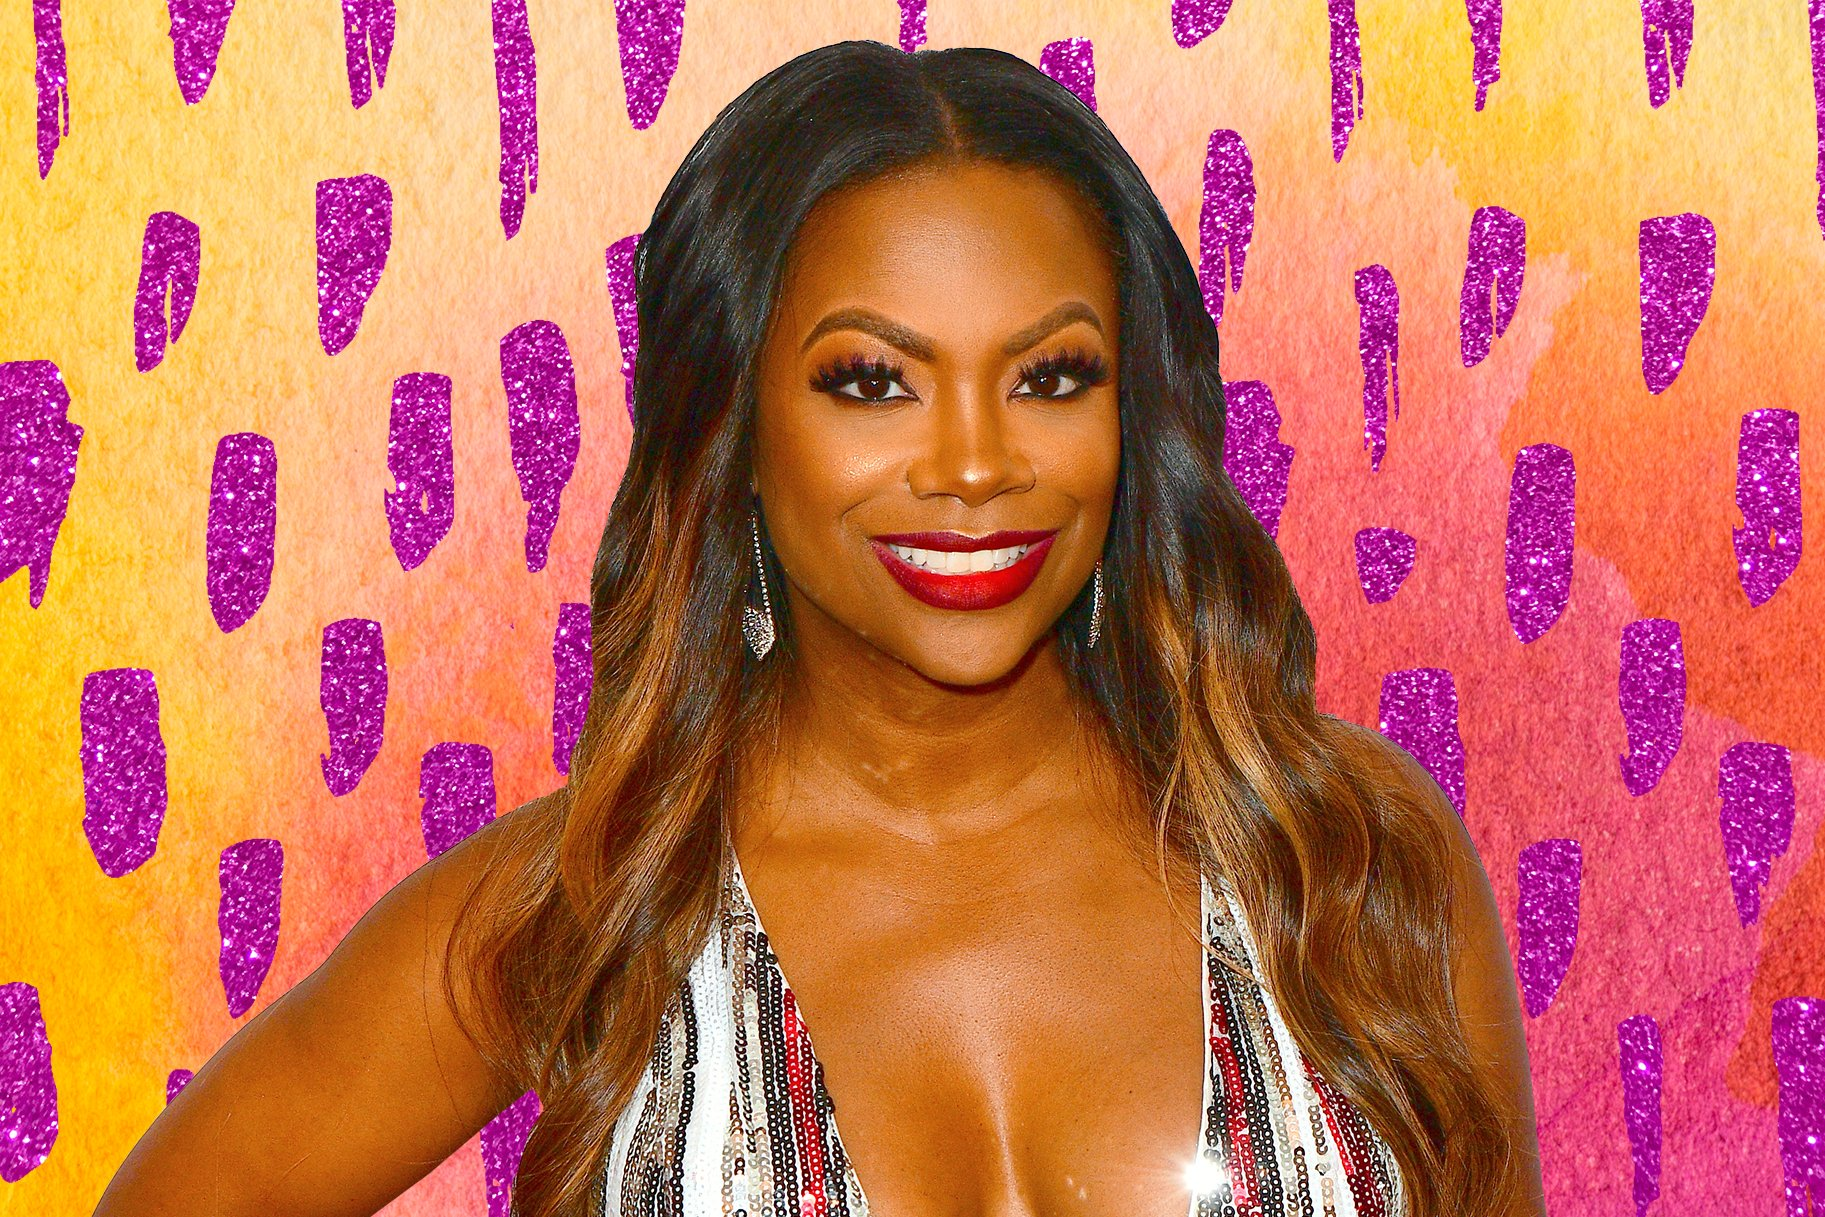 Kandi Burruss Shares A New Clip From Her Family Vacay - Some Fans Are Terrified And You Should Watch The Video To See Why